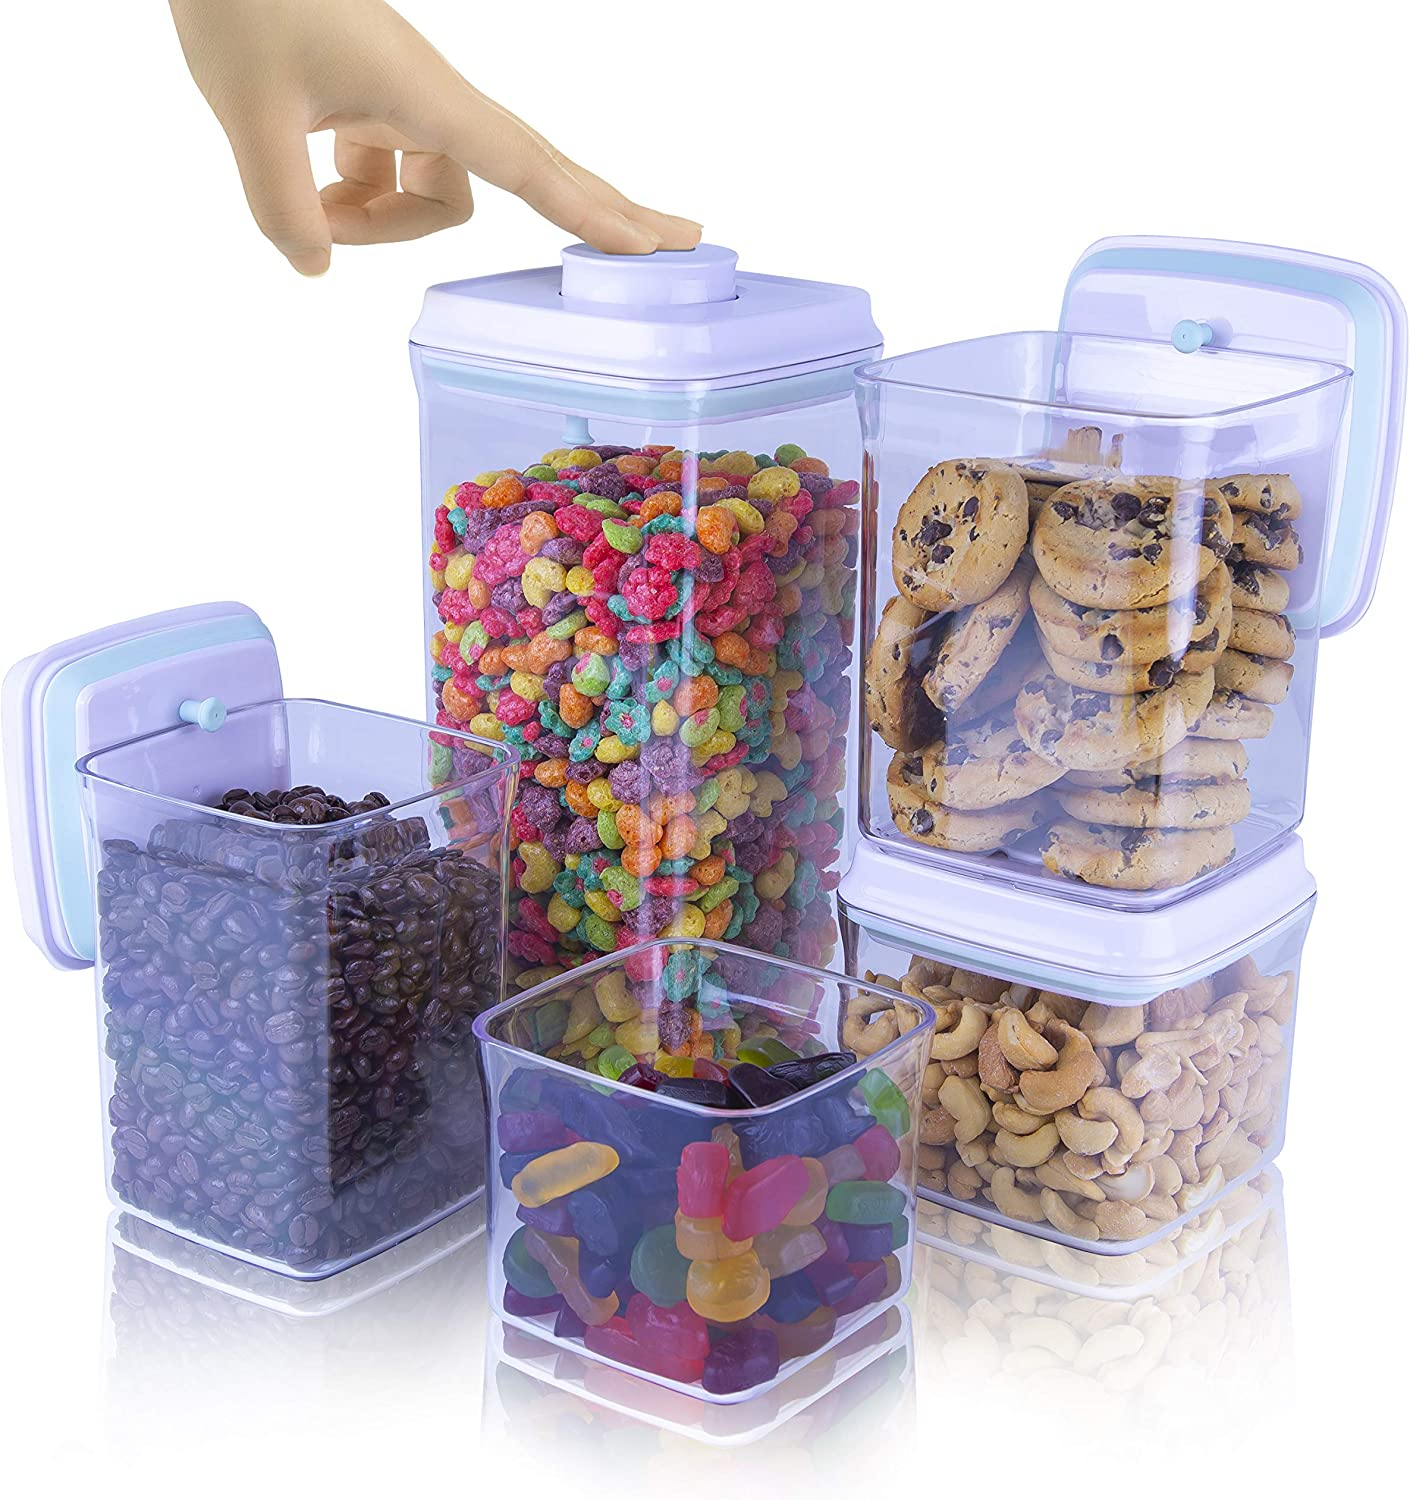 iChewie - BopTop (5pc Set) Airtight Food Storage Container – Mechanical Silicone Seal Canister - BPA-Free Stackable - 2.5Qt/1.5Qt/.9Qt/.85Qt/.5Qt